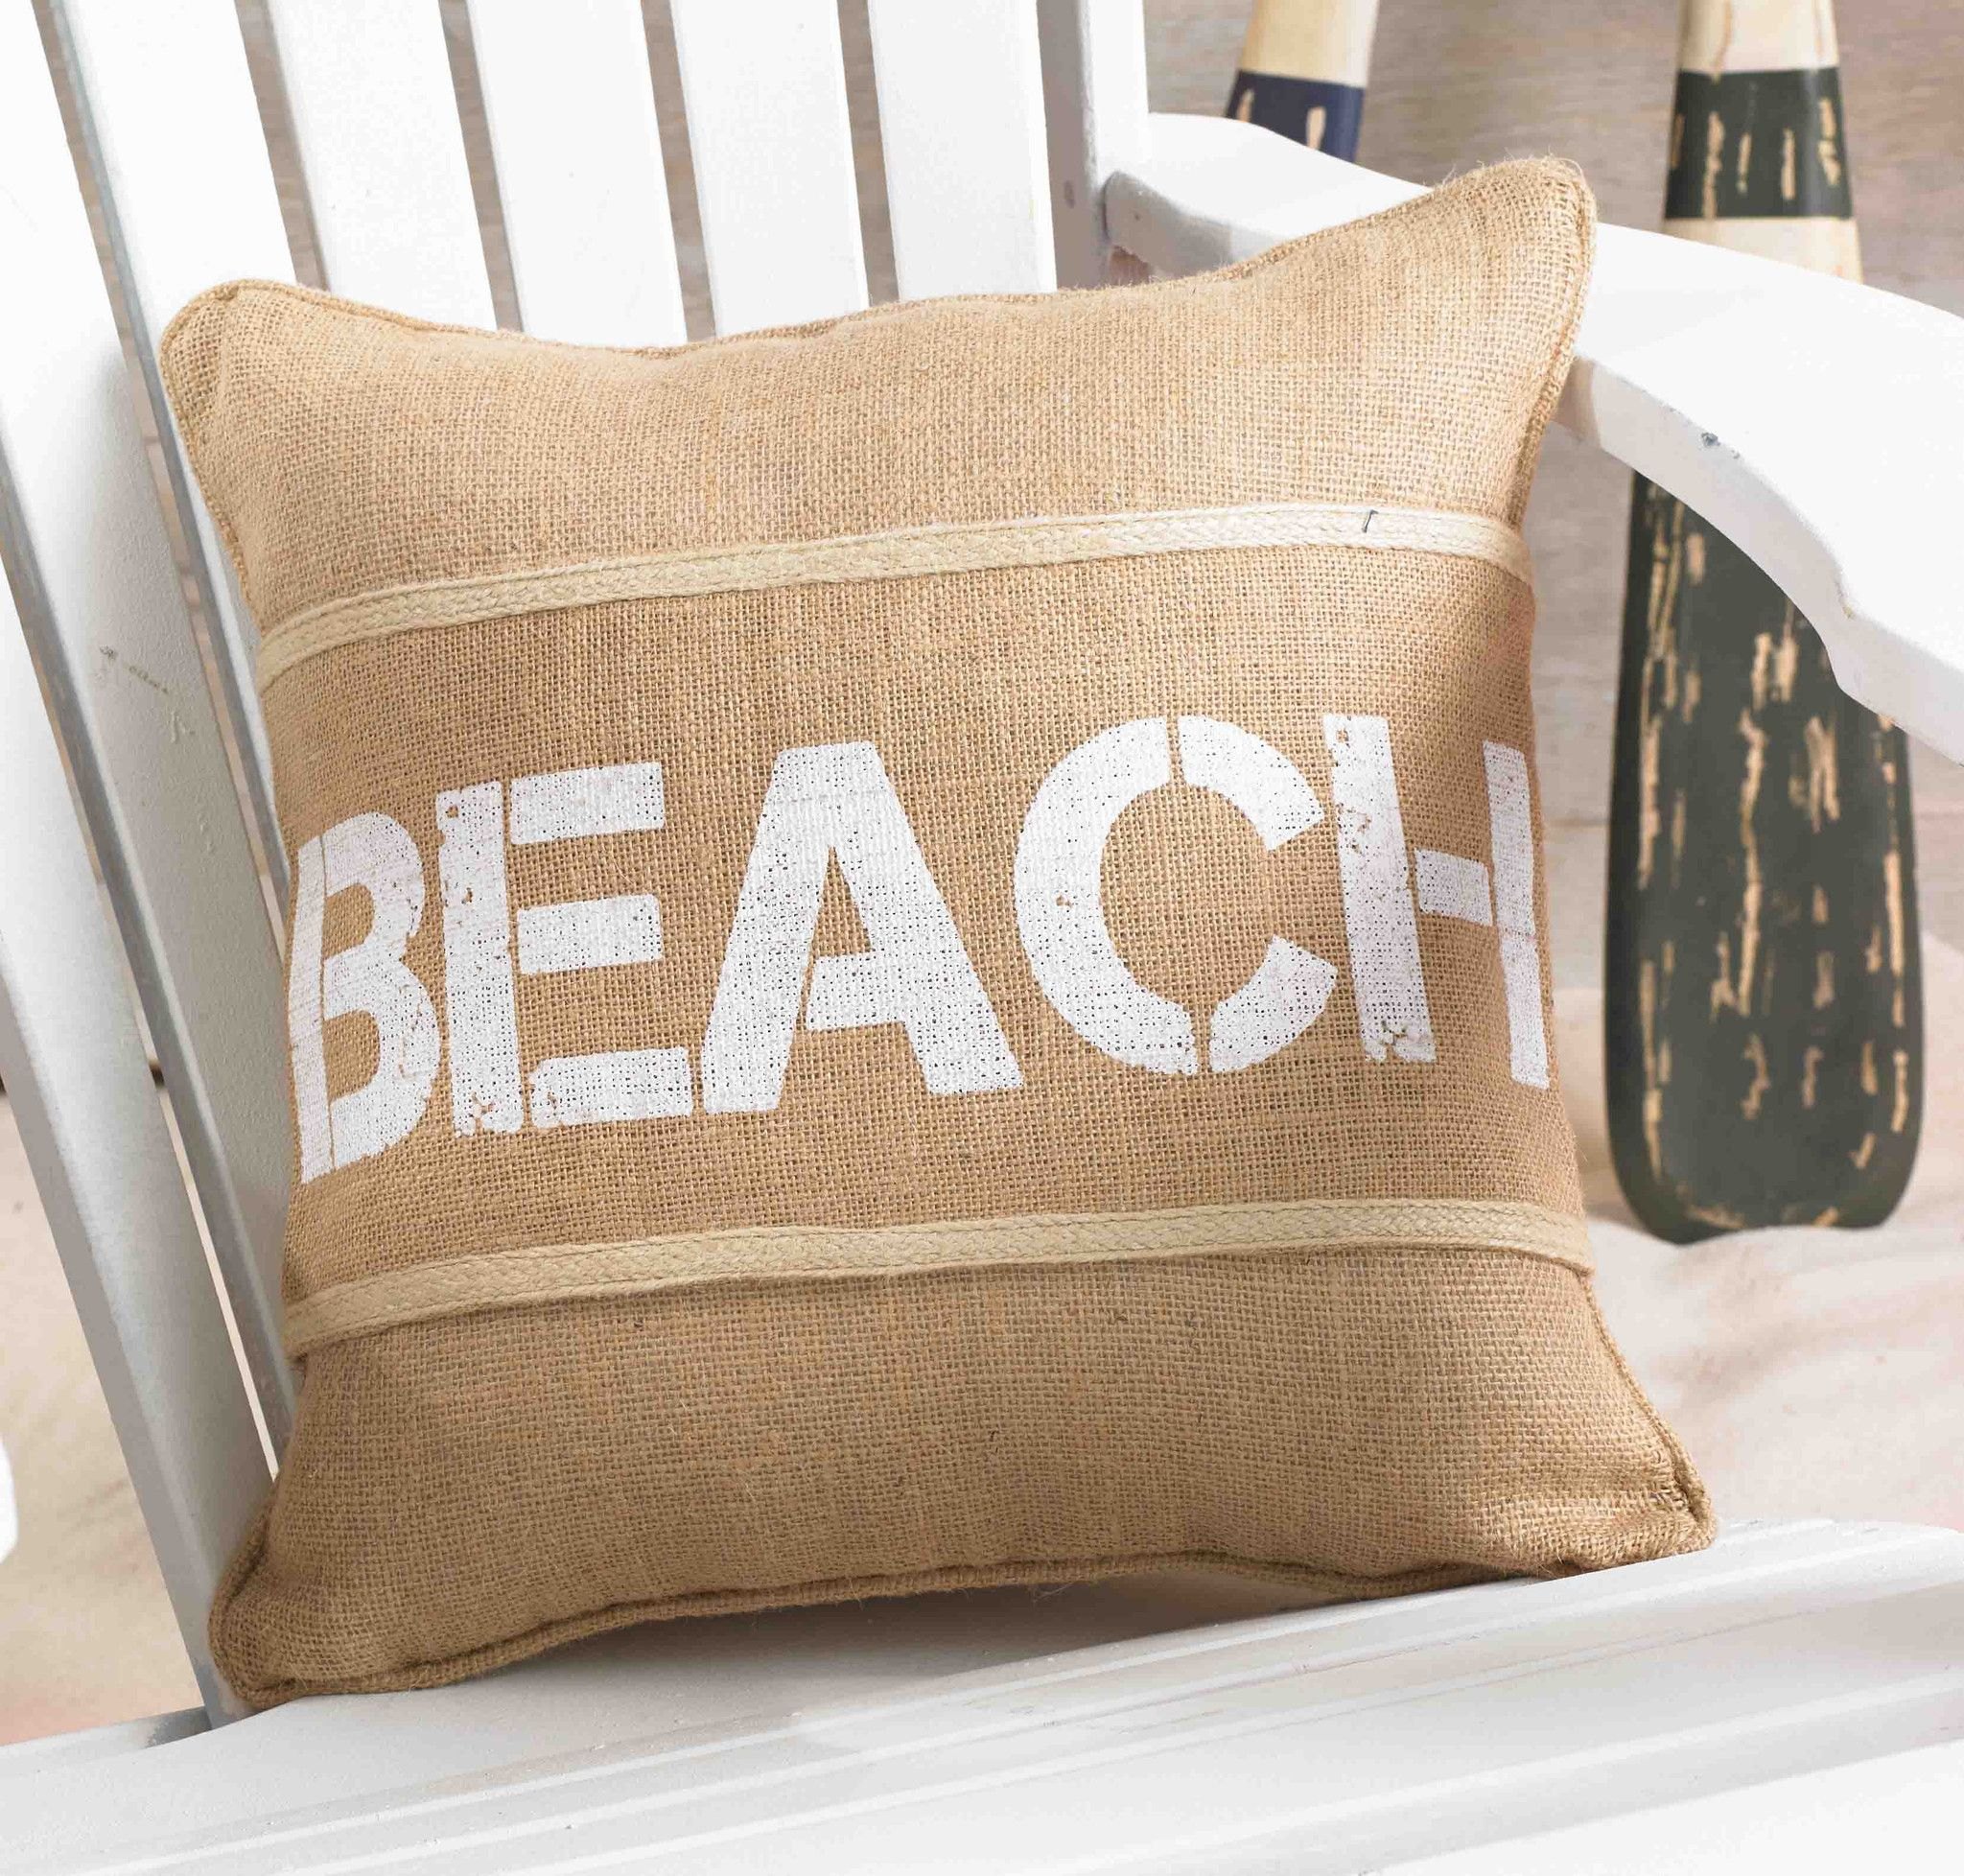 make pillows ideas elegant theme diy house pillow to best design beach